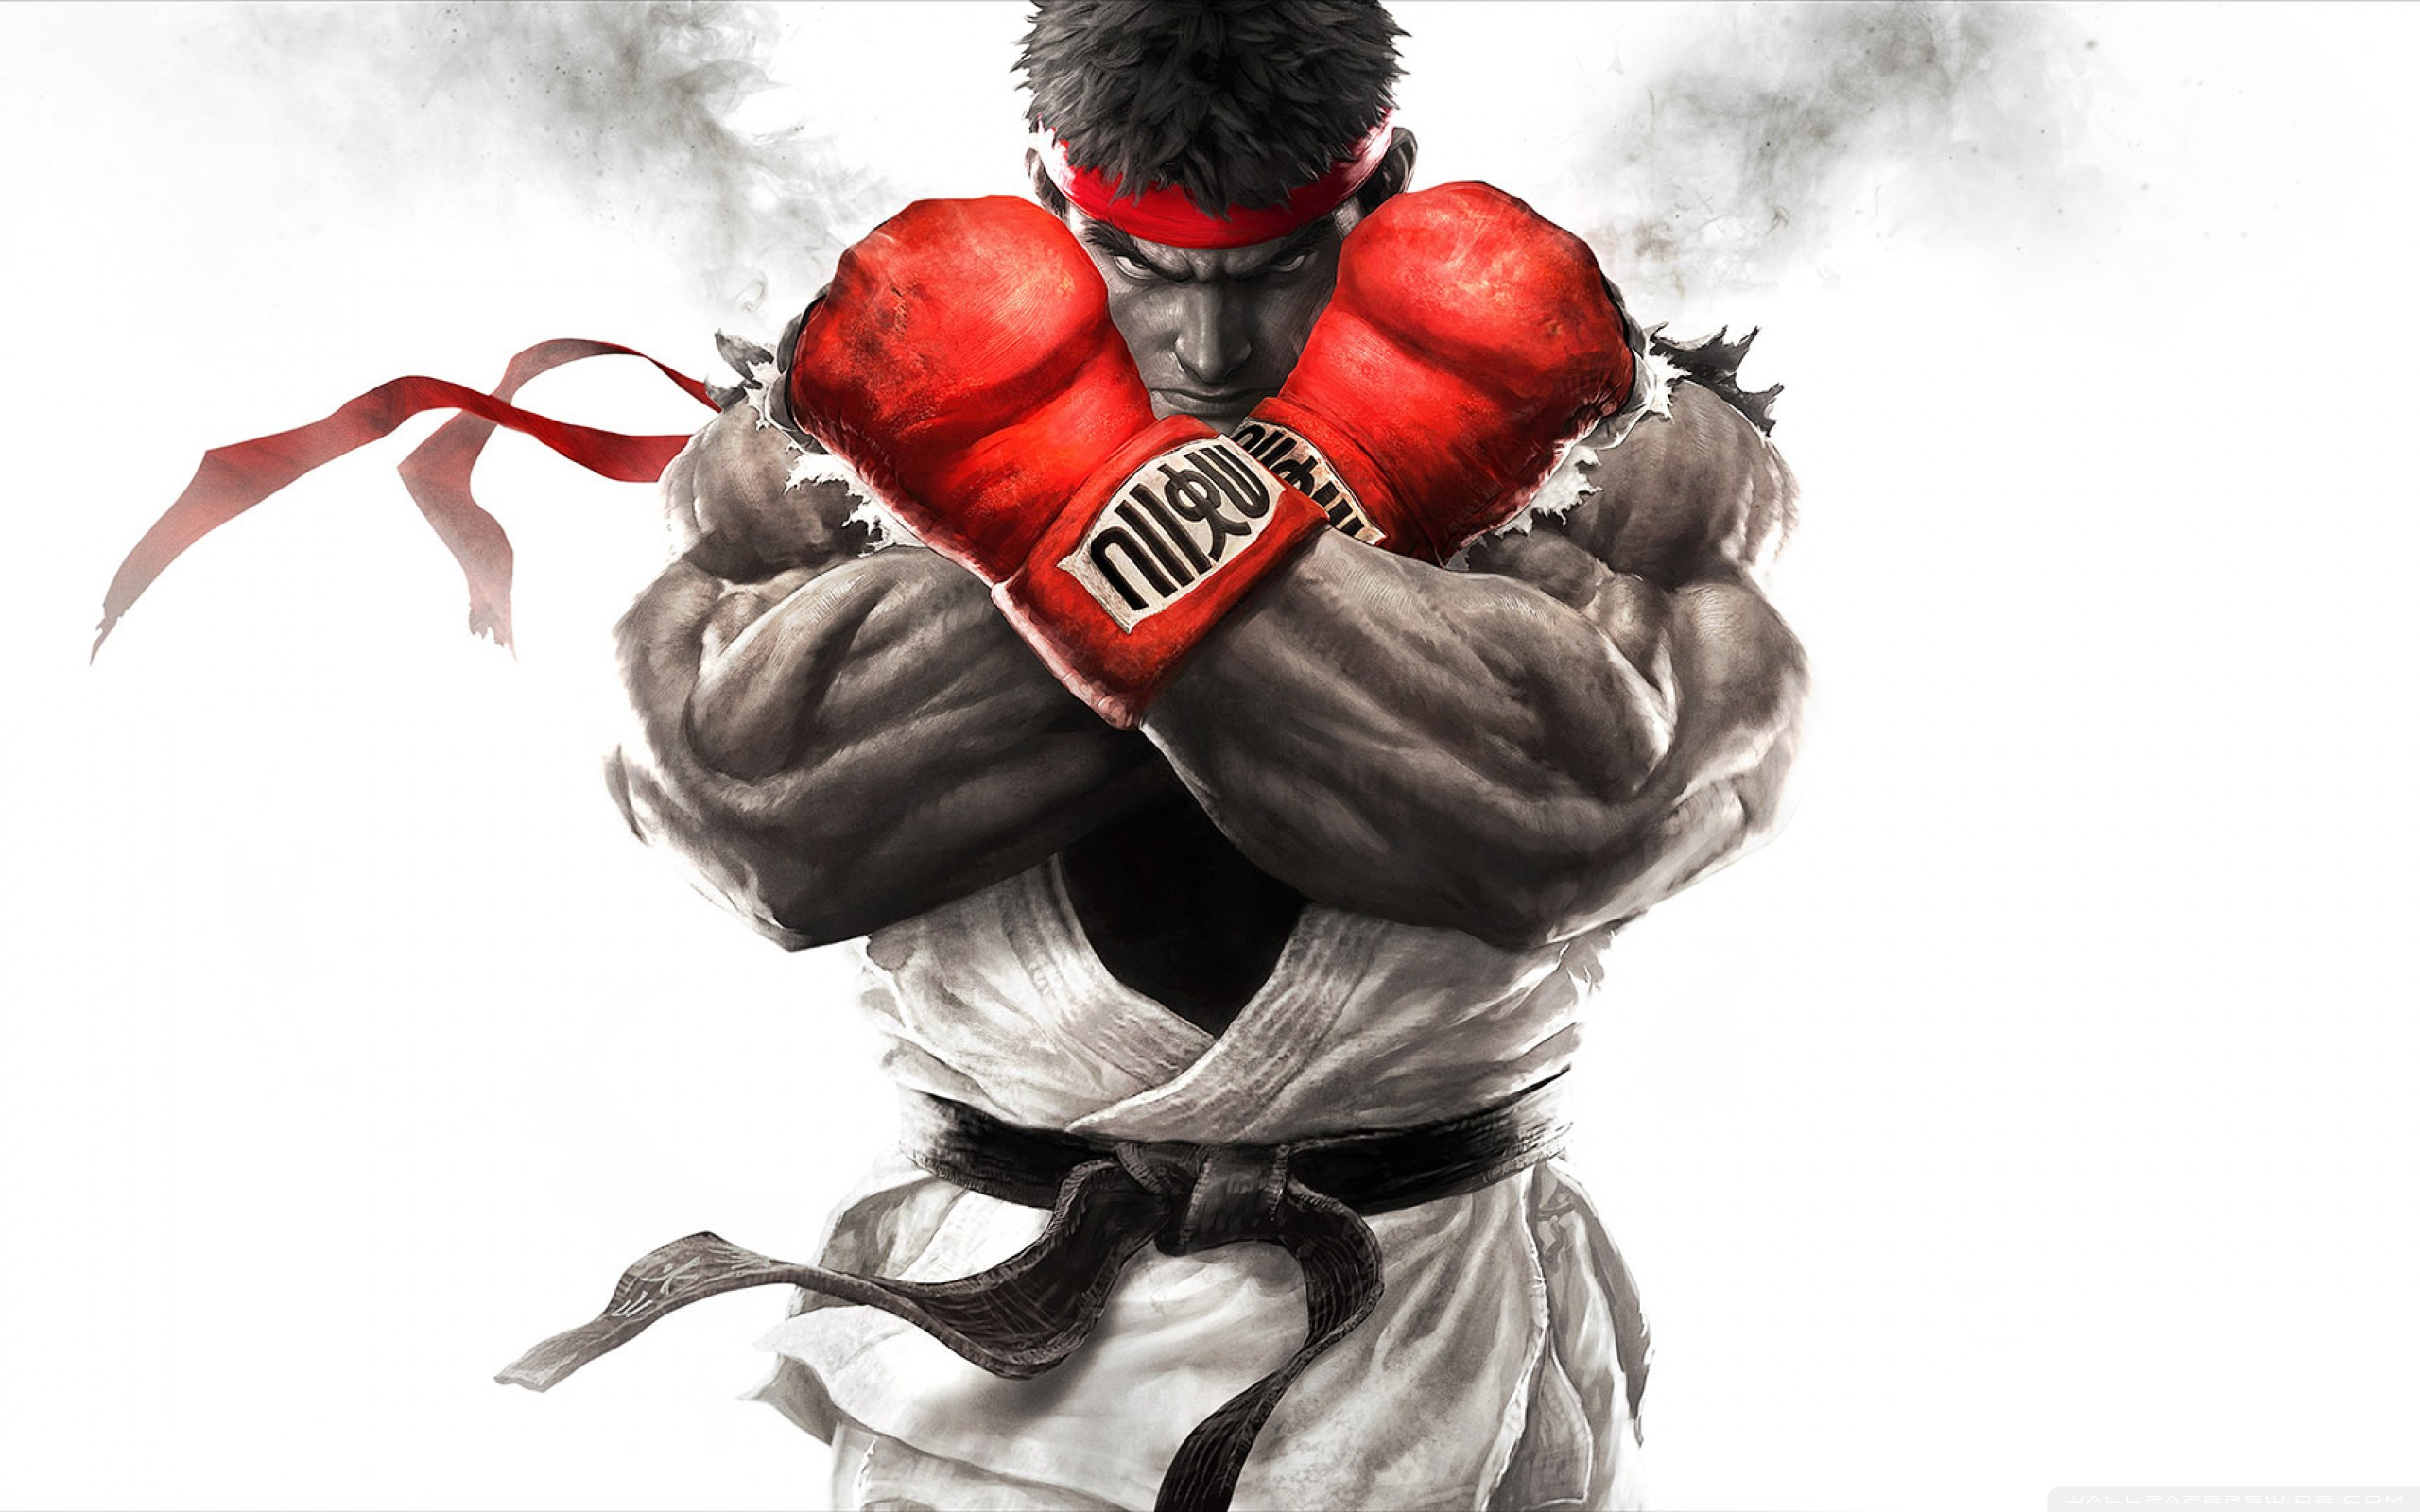 Street Fighters Wallpaper